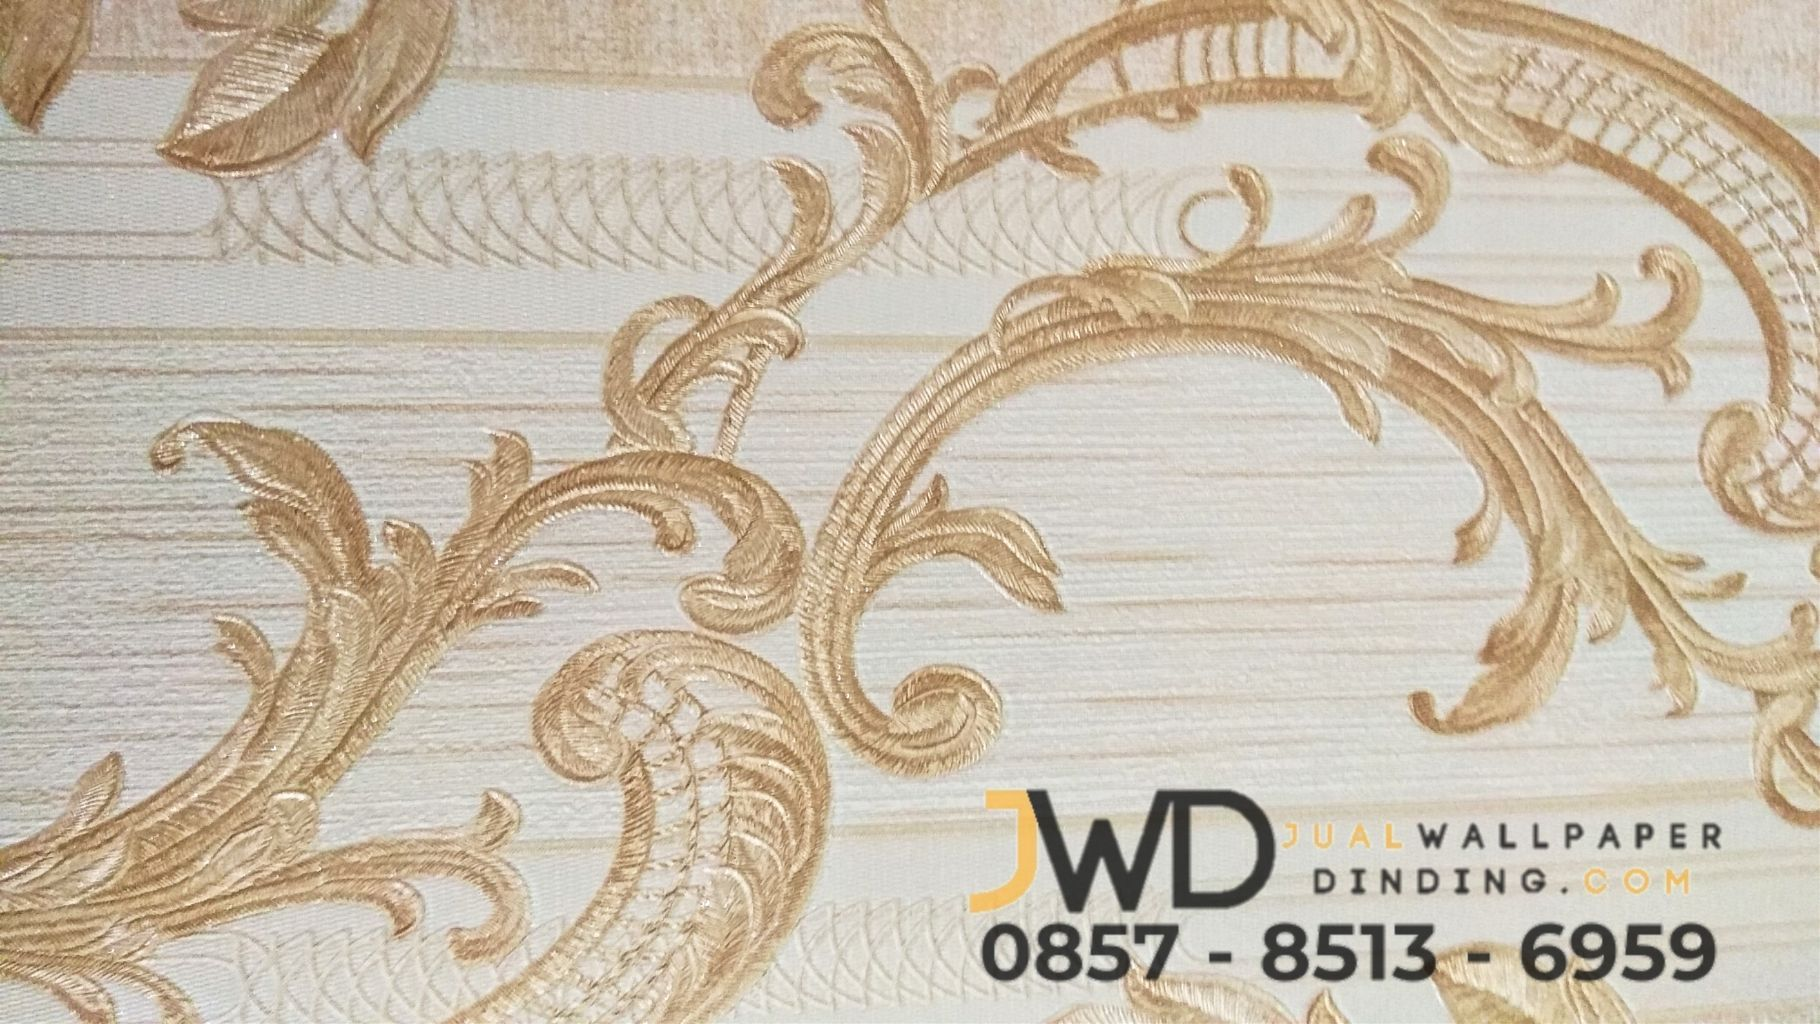 Wallpaper Dinding JWD Interior